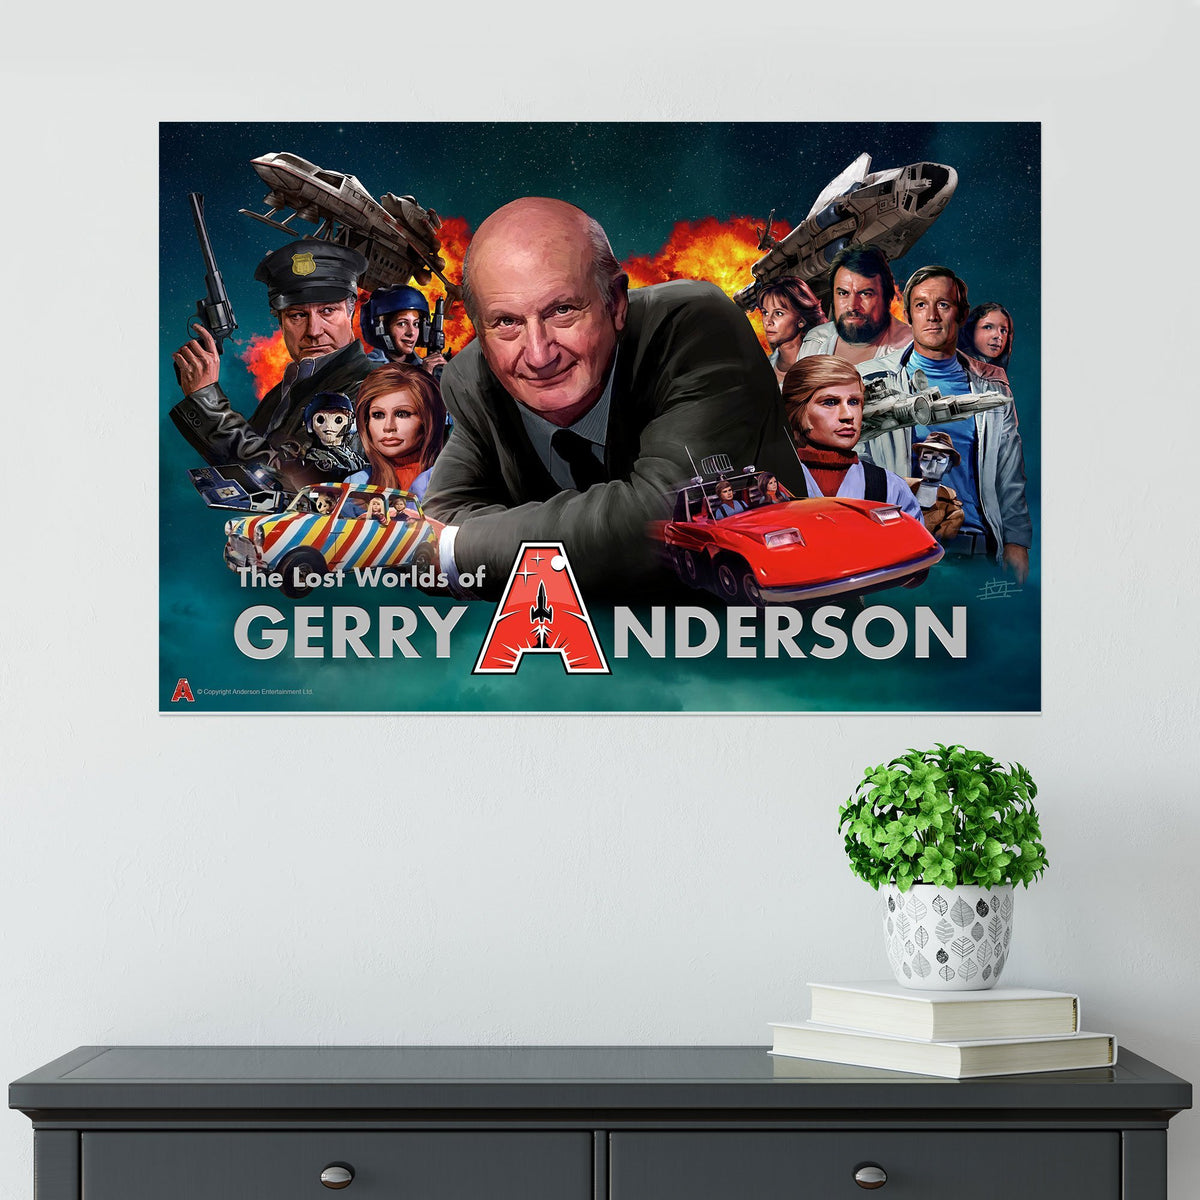 Lost Worlds of Gerry Anderson Poster [Official and Exclusive] - The Gerry Anderson Store